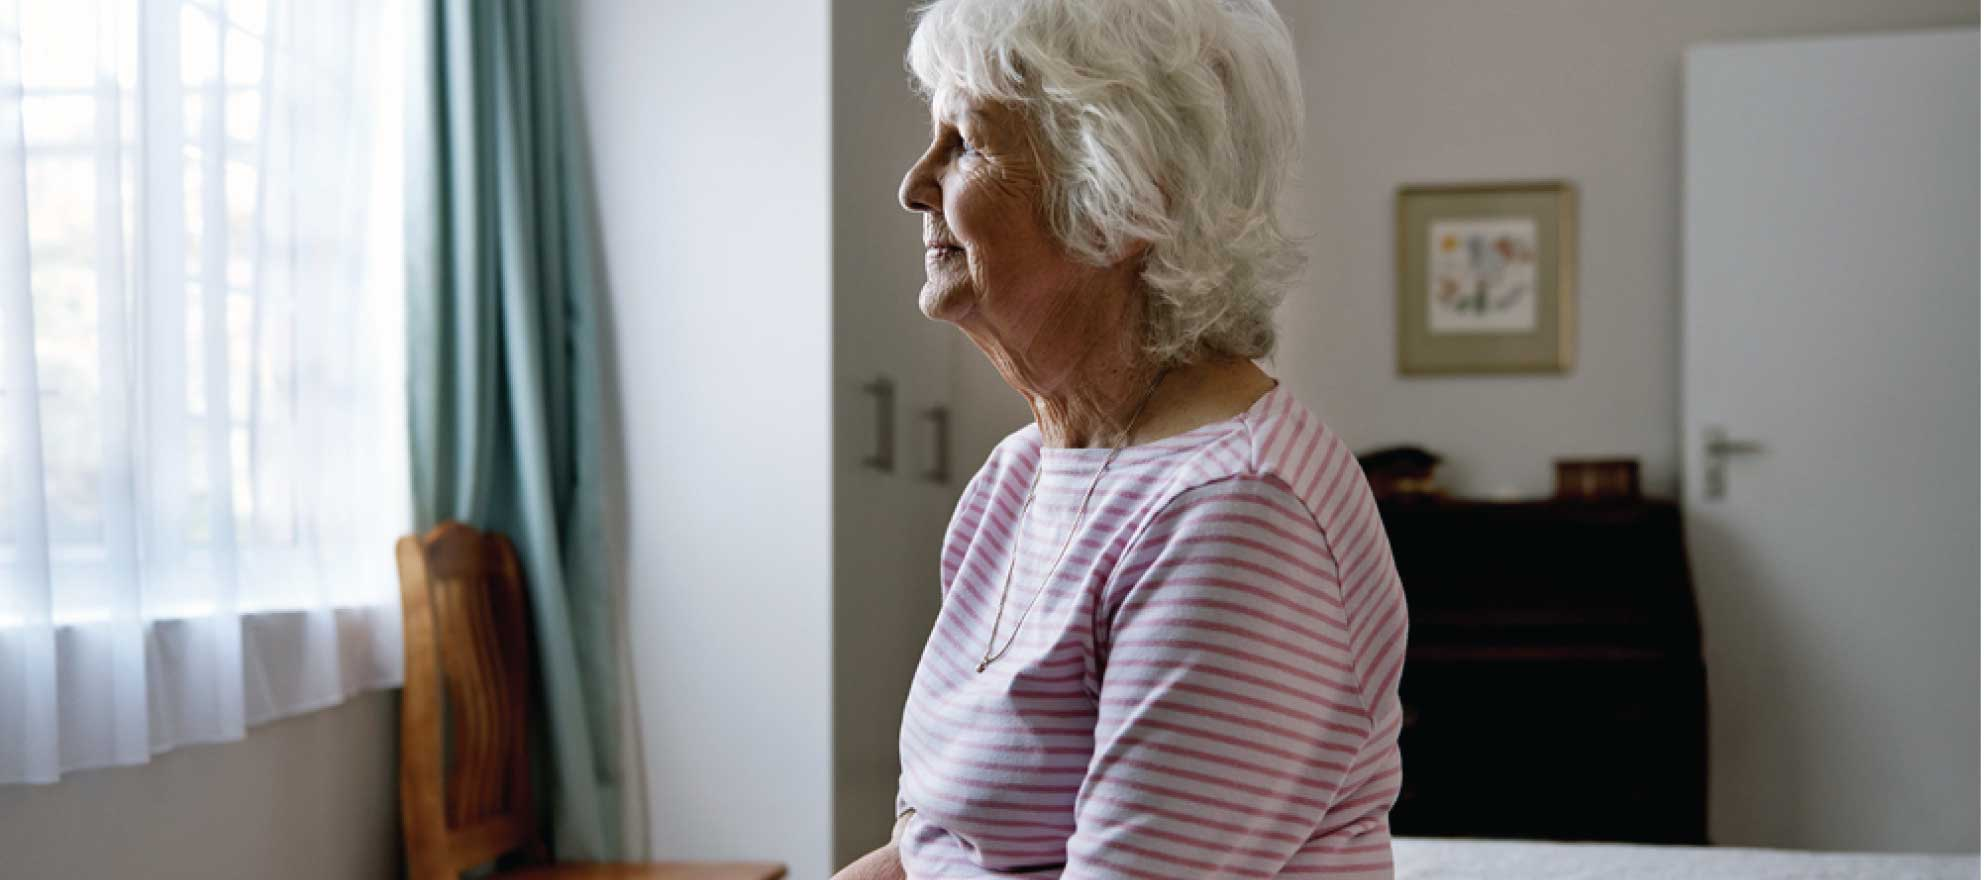 California legislation proposed to protect rights of widowed homeowners